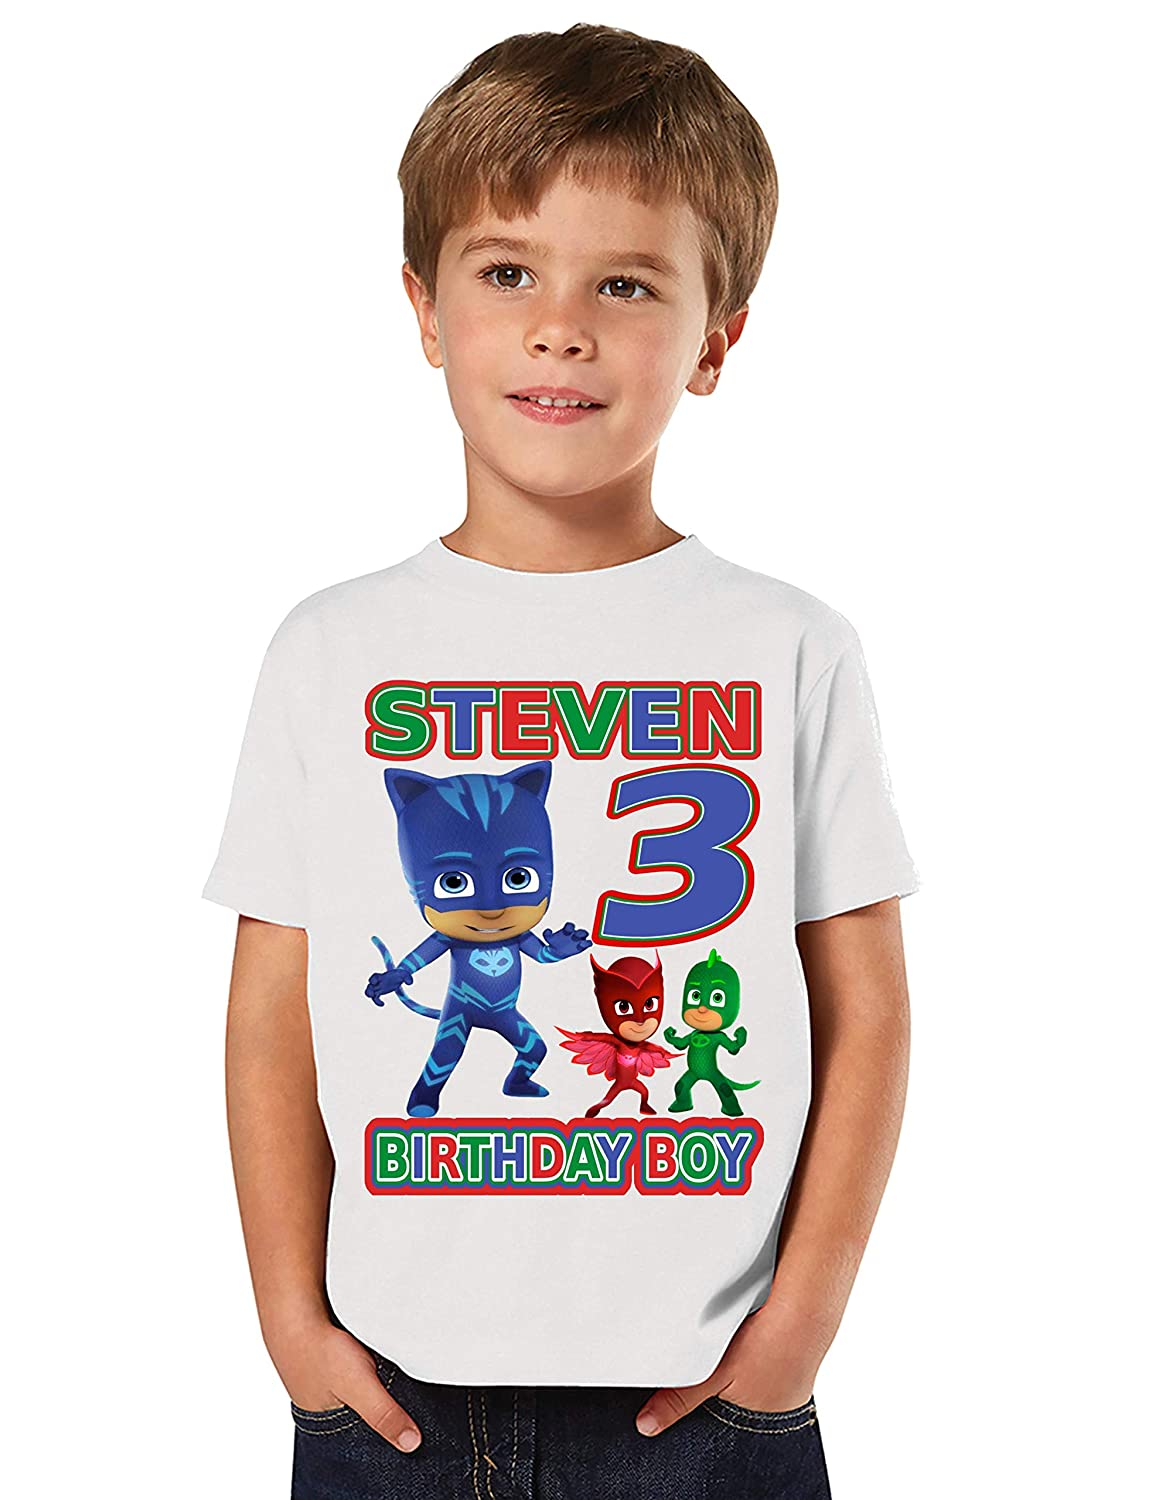 Amazon Com Connor Catboy Pj Masks Birthday Shirt Pj Masks Catboy Birthday Party Add Any Name And Age Family Matching Shirts Boy Birthday Shirts Pj Masks Birthday Shirt Pj Masks Boys 2 Handmade